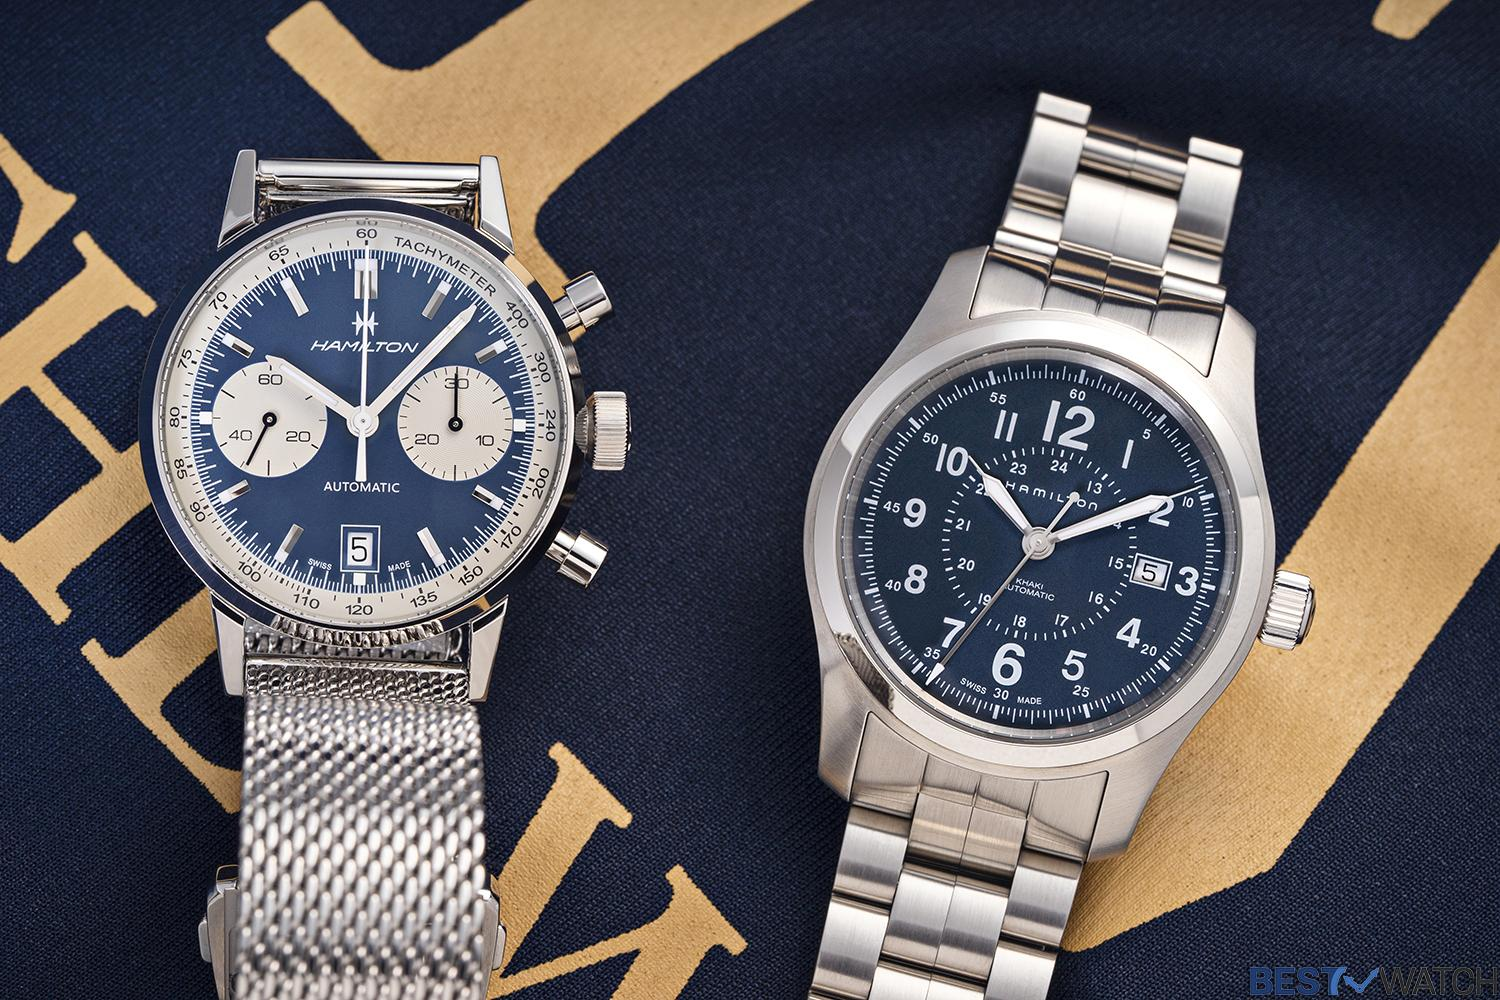 Hamilton Watch Reviews: A Choice of Mid-end Quality Watches